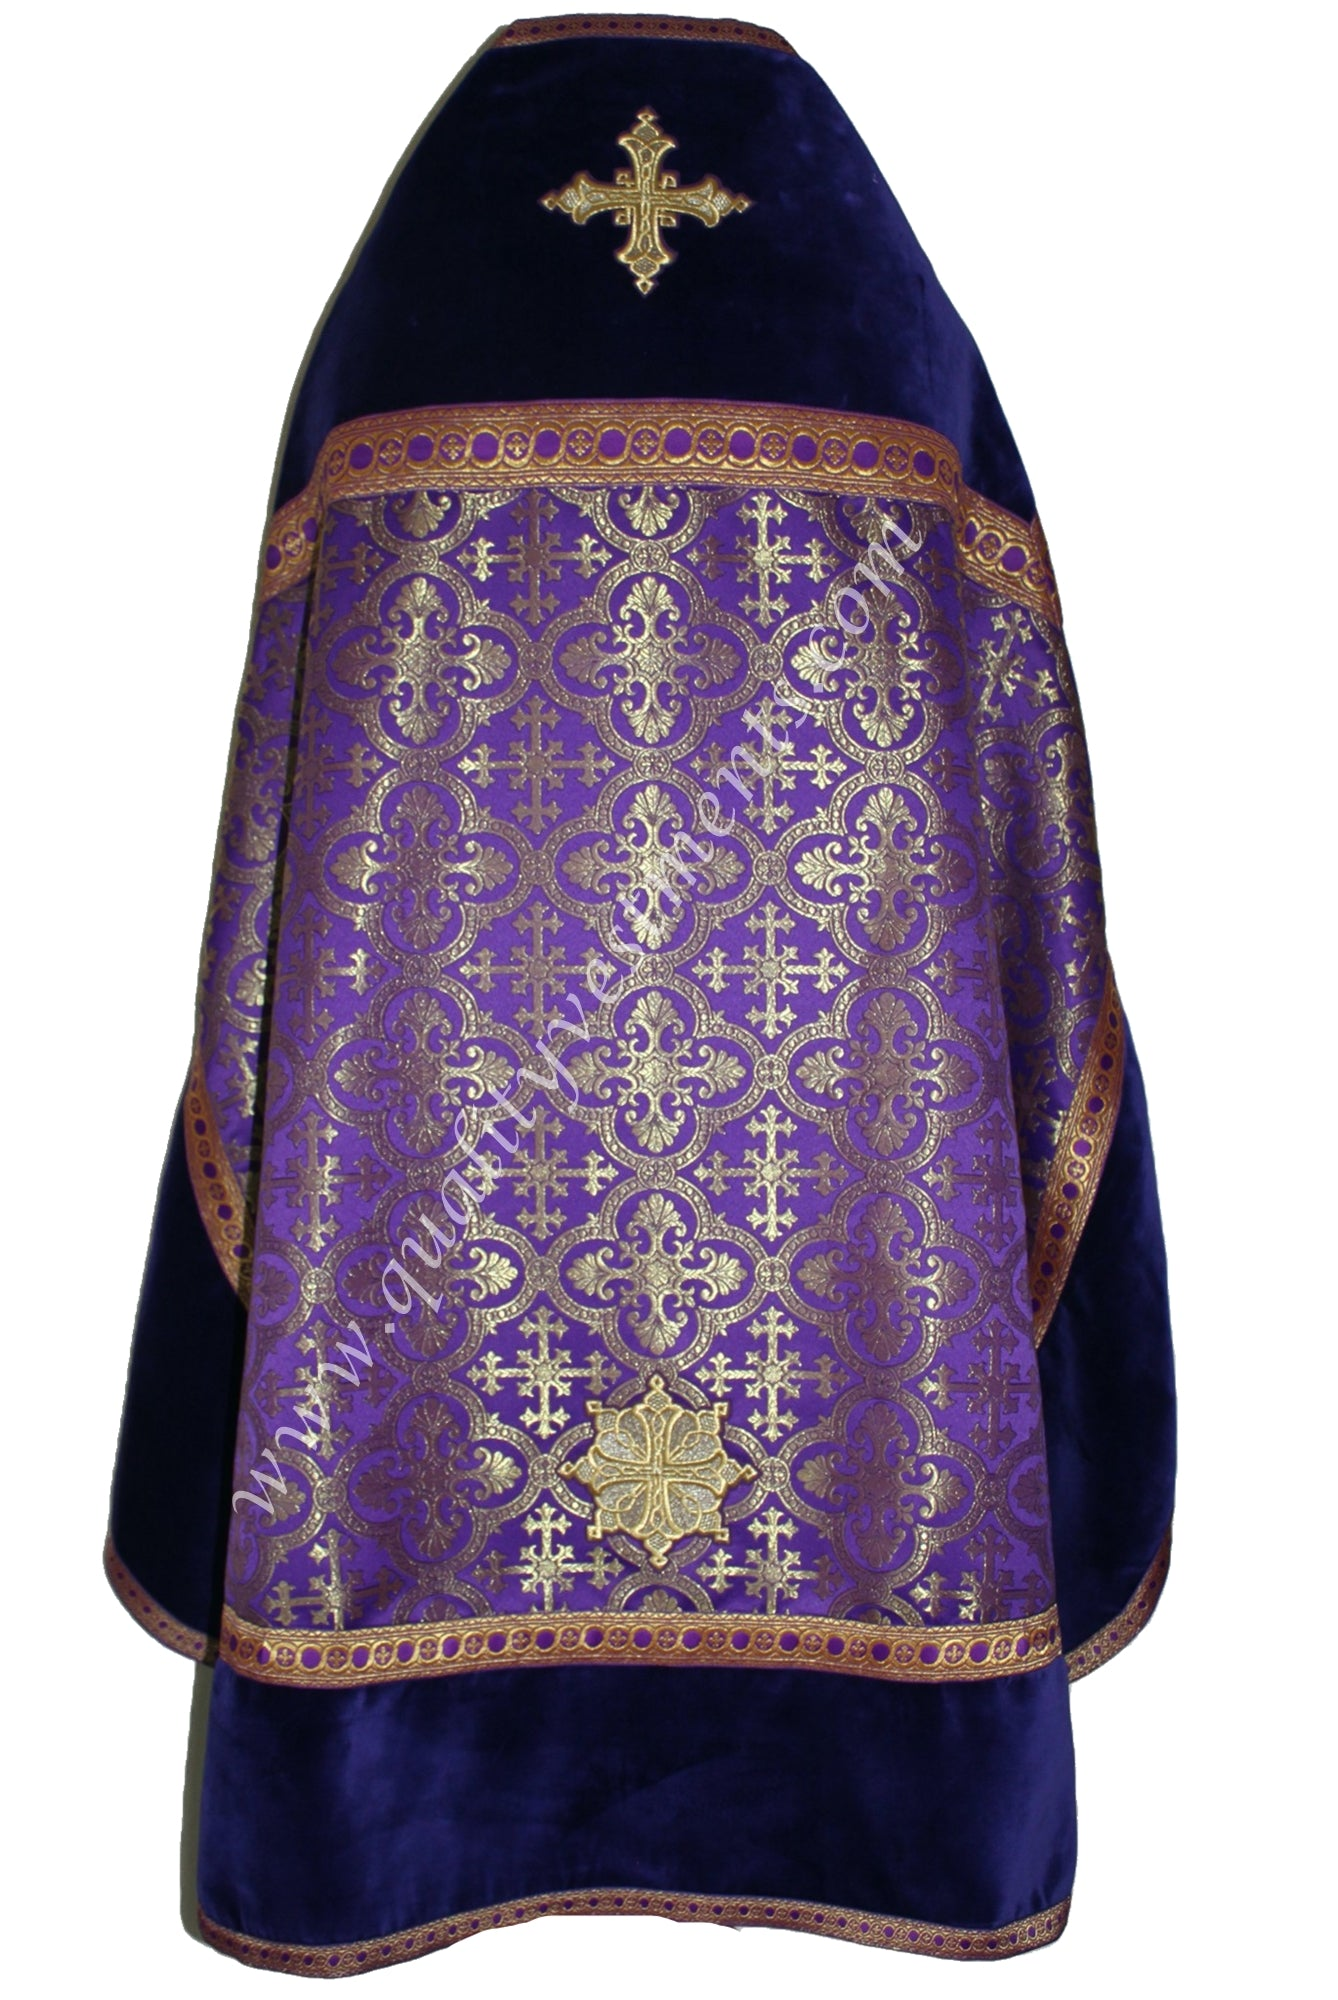 Purple Gold w Velvet Orthodox Priest Vestments Metallic Brocade TO ORDER!